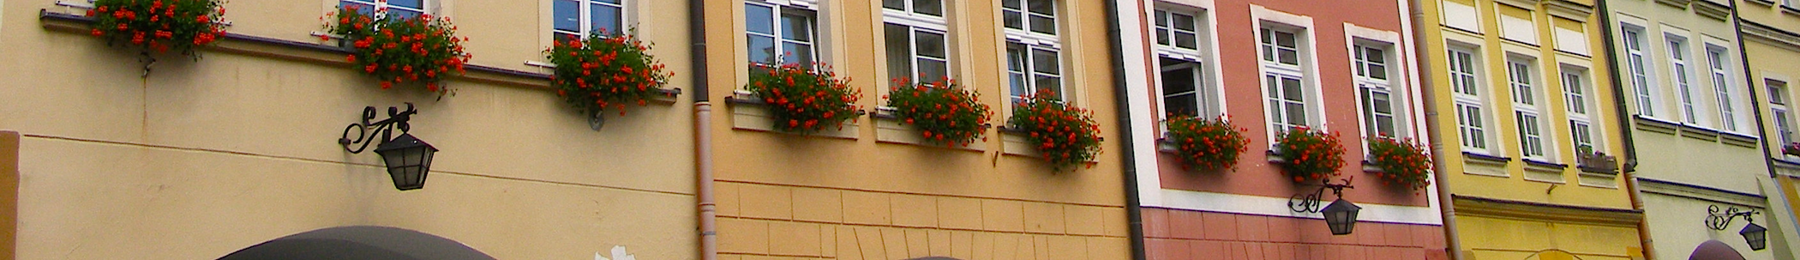 Colorful facades of the Jelenia Góra Town Hall Square